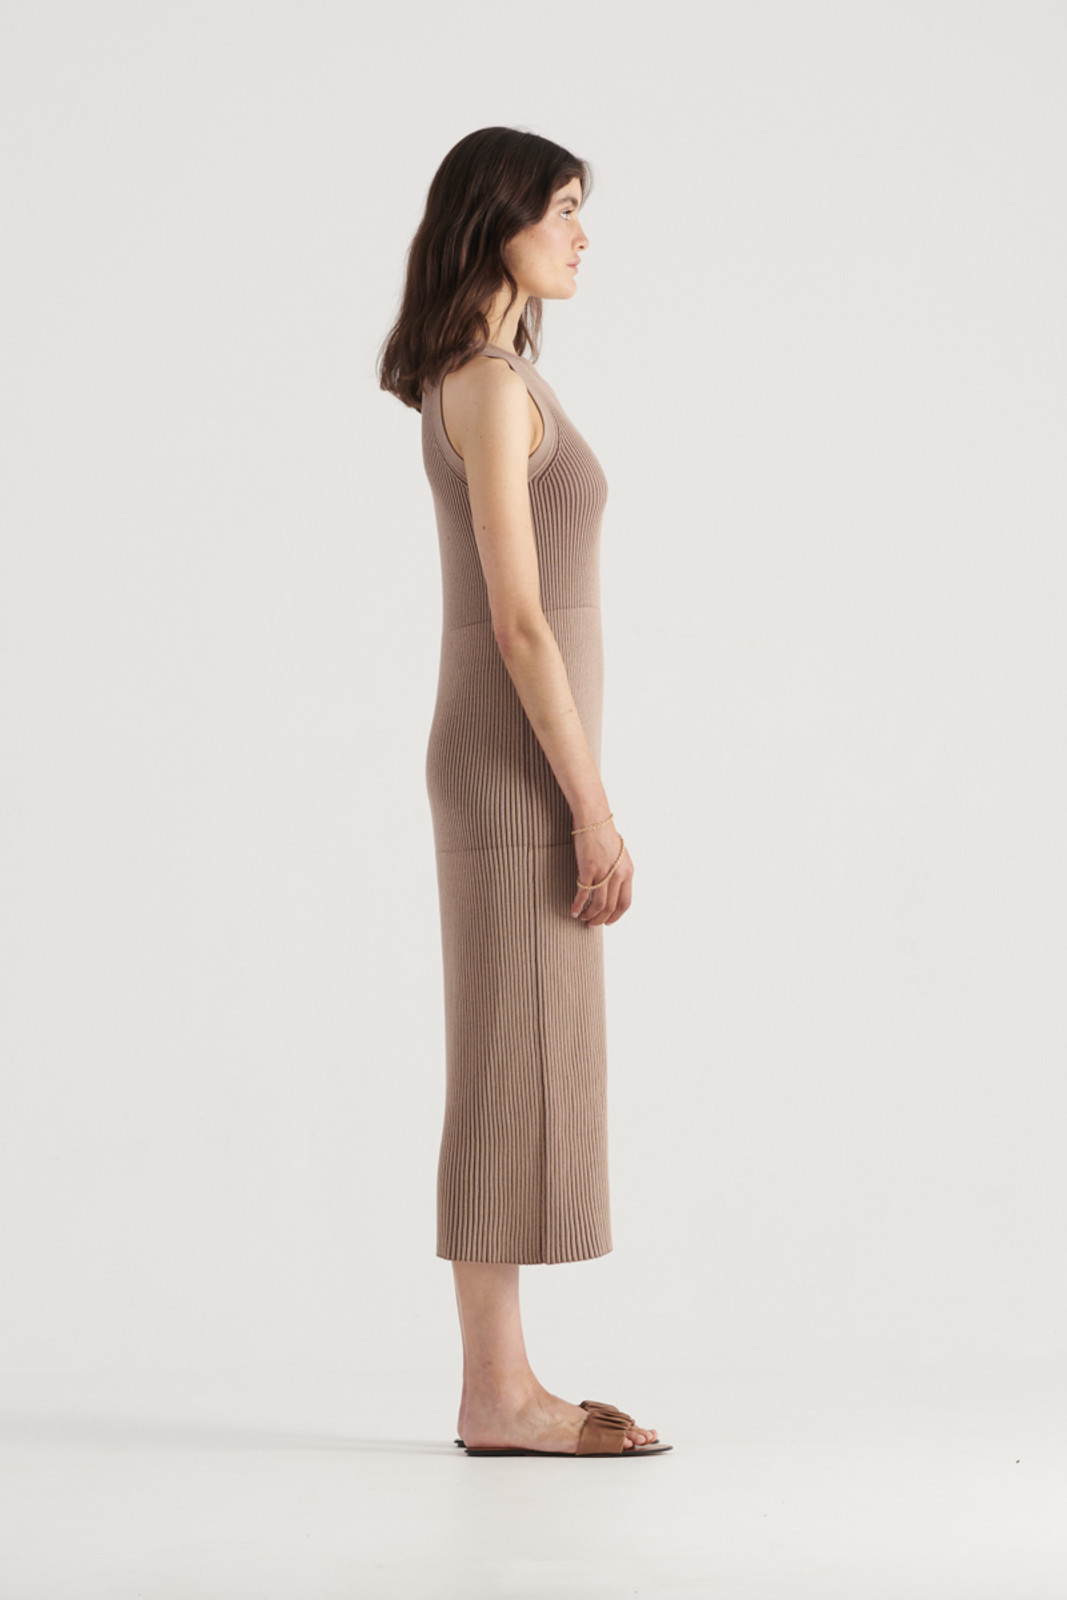 Elka Collective WomensBowie Knit Dress Taupe  3